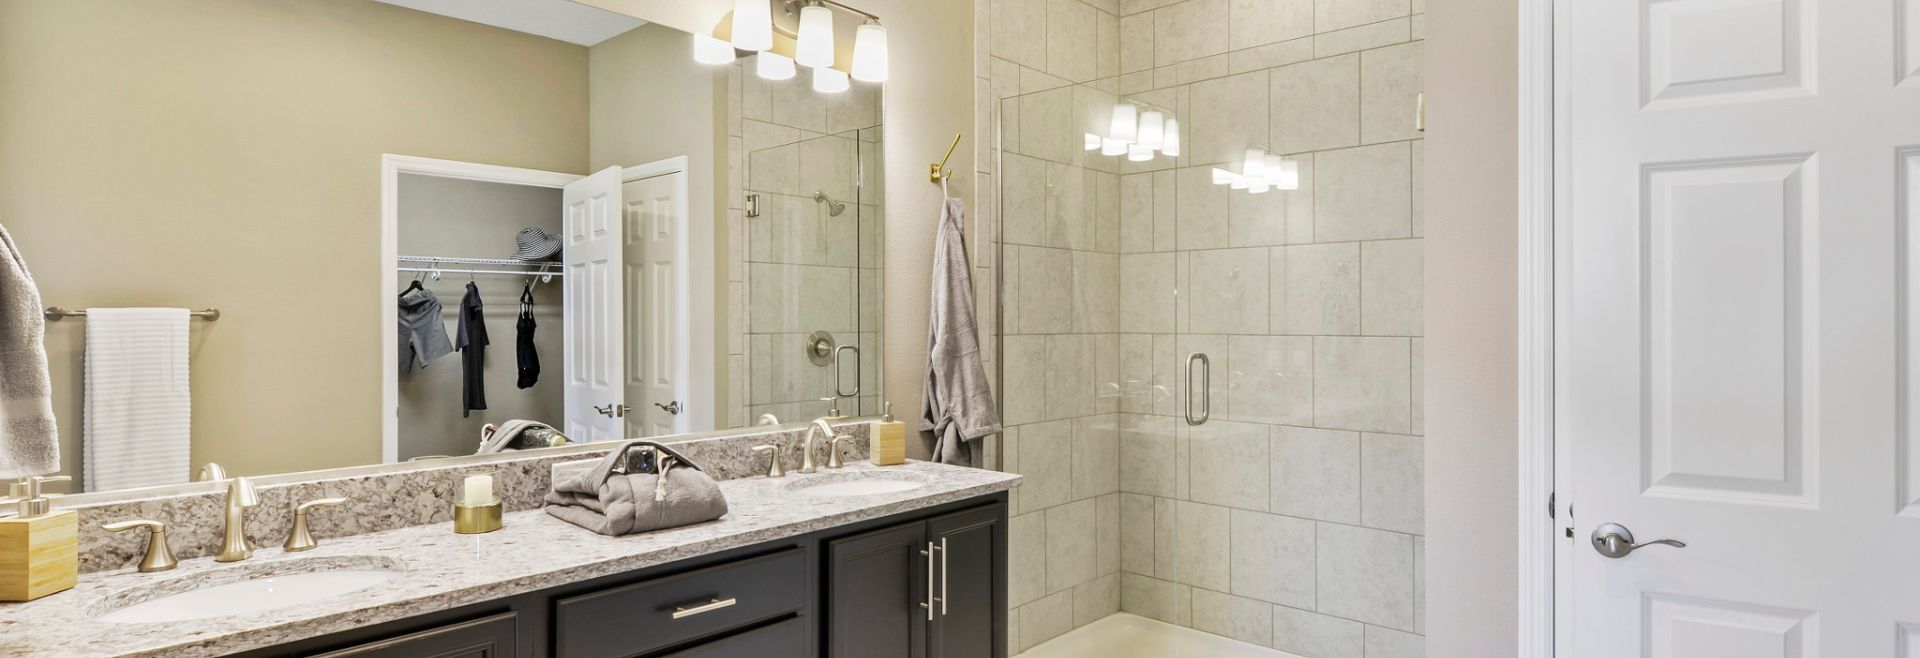 Bathroom featured in the Excite By Shea Homes - Trilogy in Ocala, FL